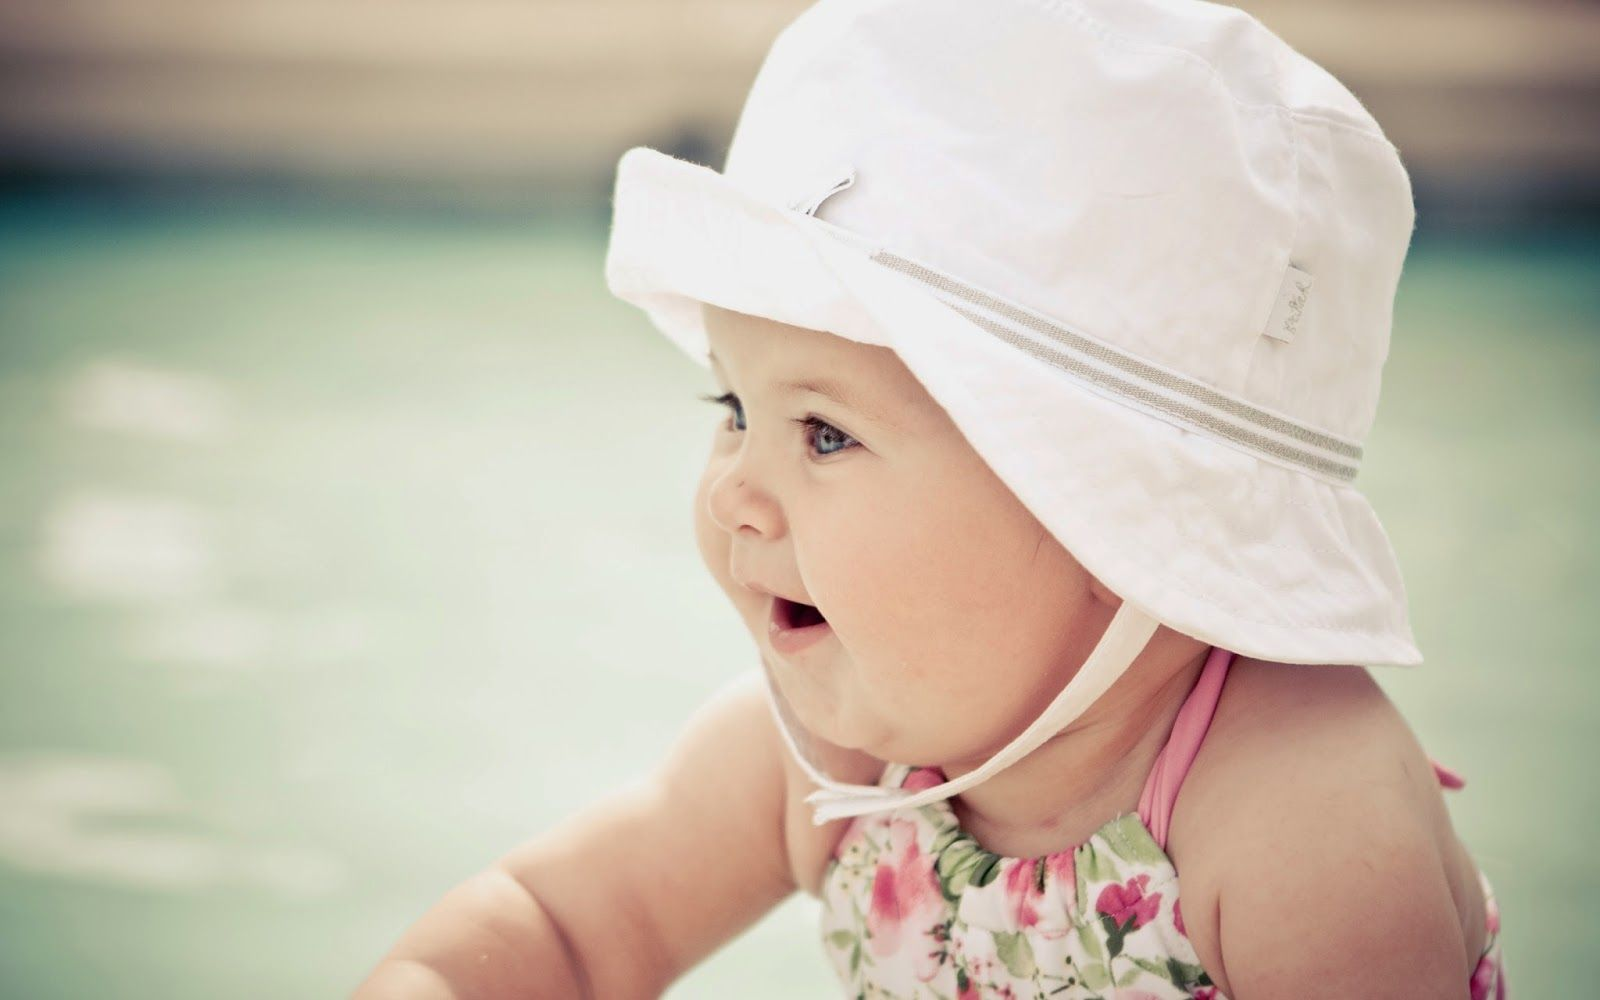 Ideas About Cute Baby Wallpaper On Pinterest Beautiful 1600 1000 Pictures Of Cute Babies Wallpapers 33 Cute Baby Girl Photos Baby Images Cute Baby Wallpaper